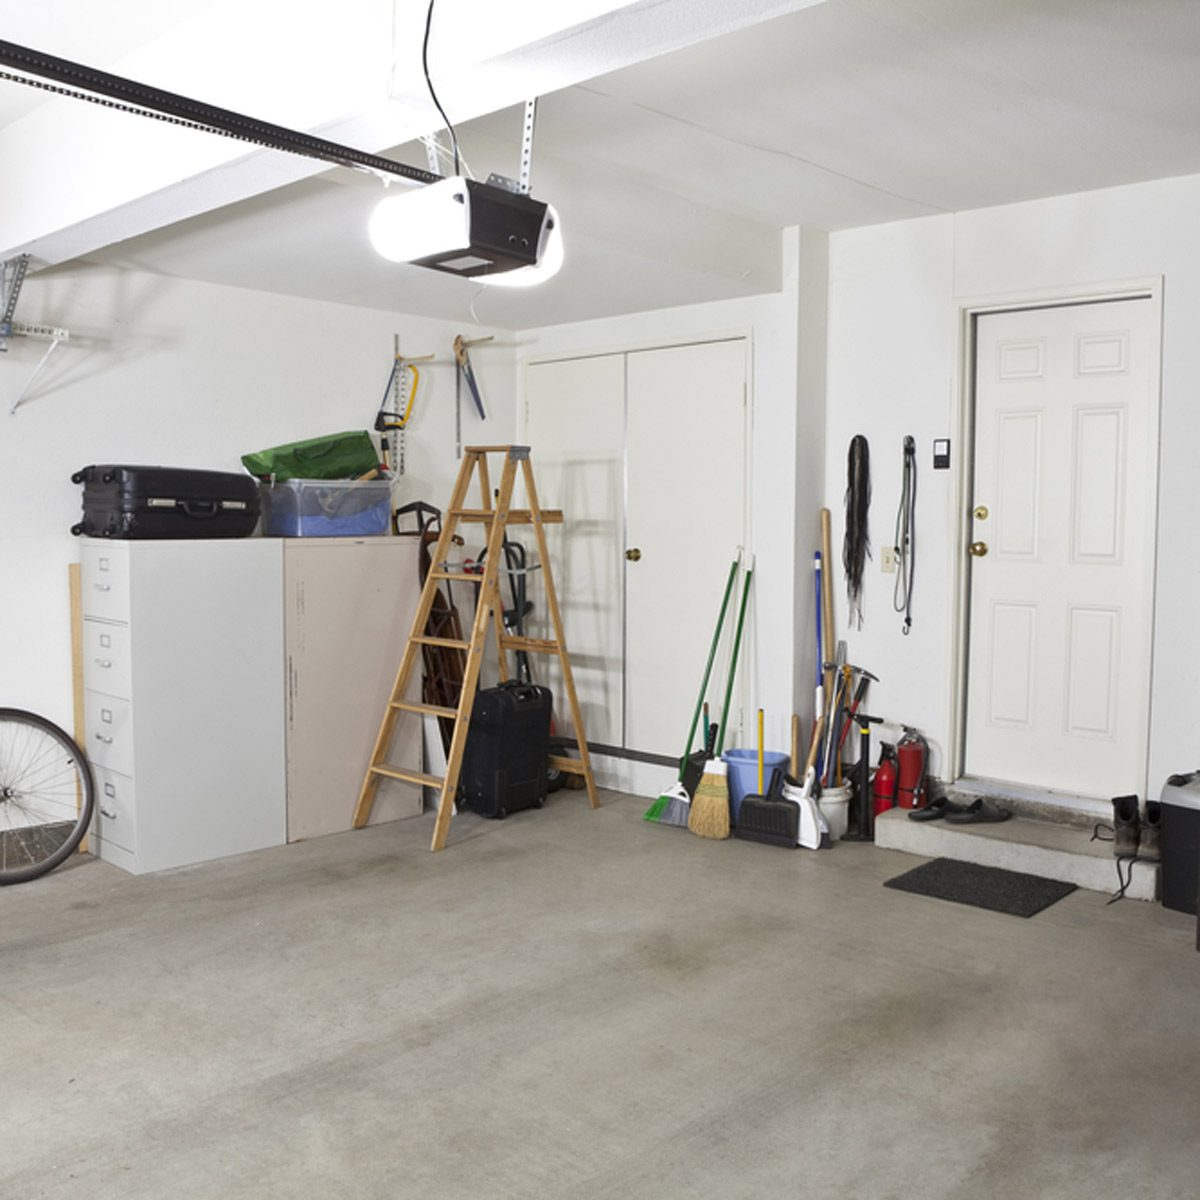 Retrofit Your Garage Door Openers To Work With Wi Fi The Family